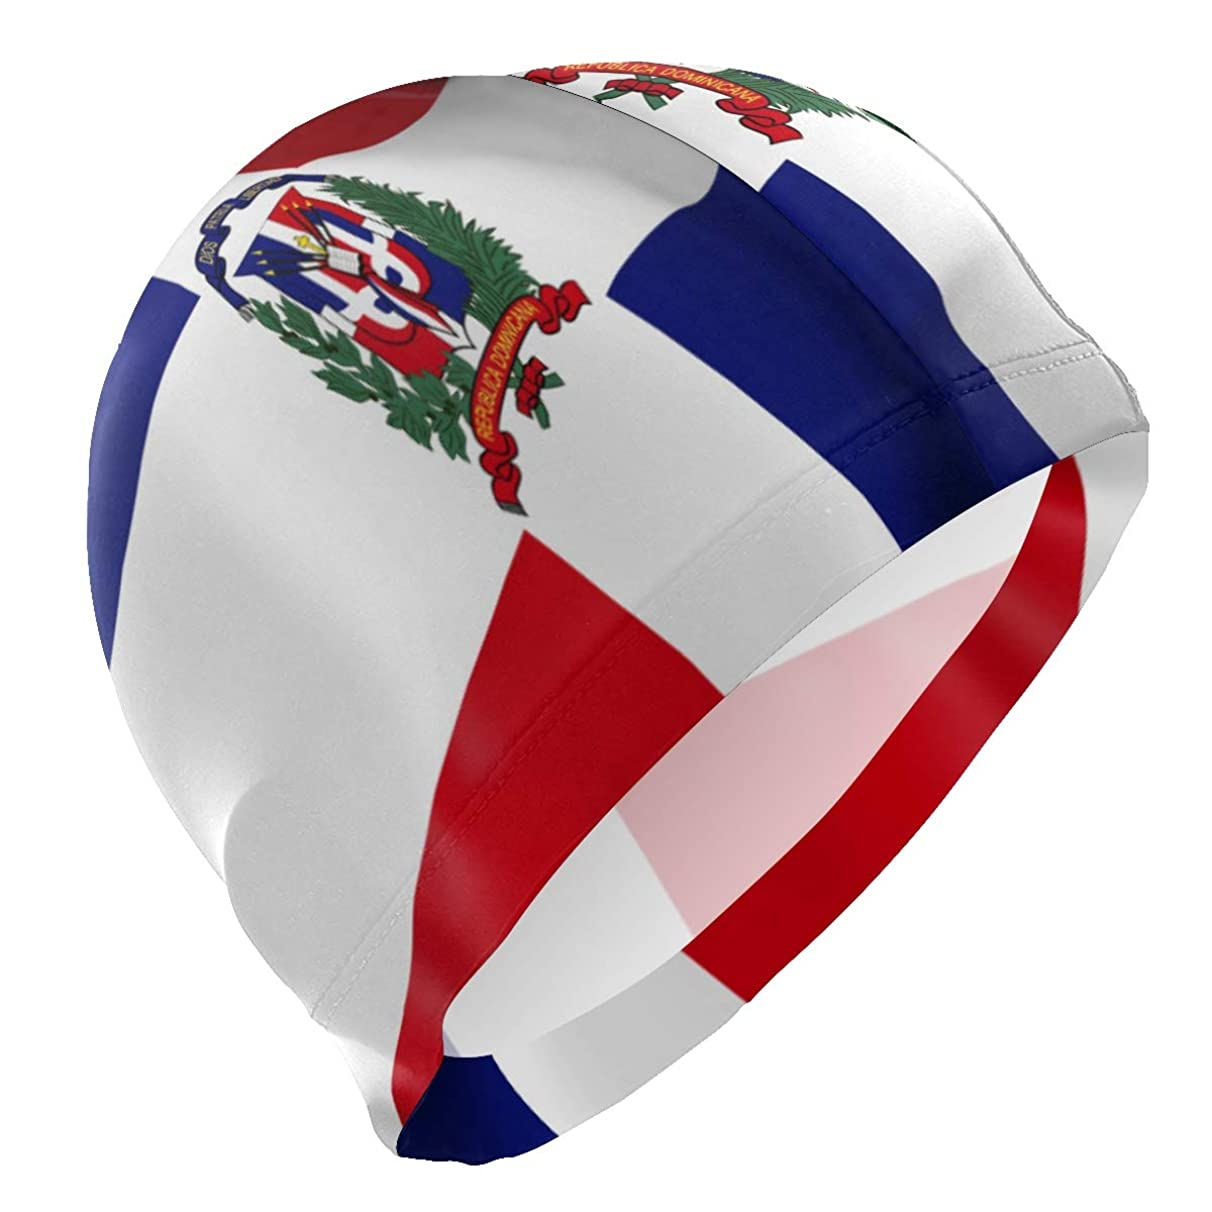 Swin Cap Dominican Republic Waving Flag Nose Clip Hat Comfortable Skin-Friendly for Adult Teenagers